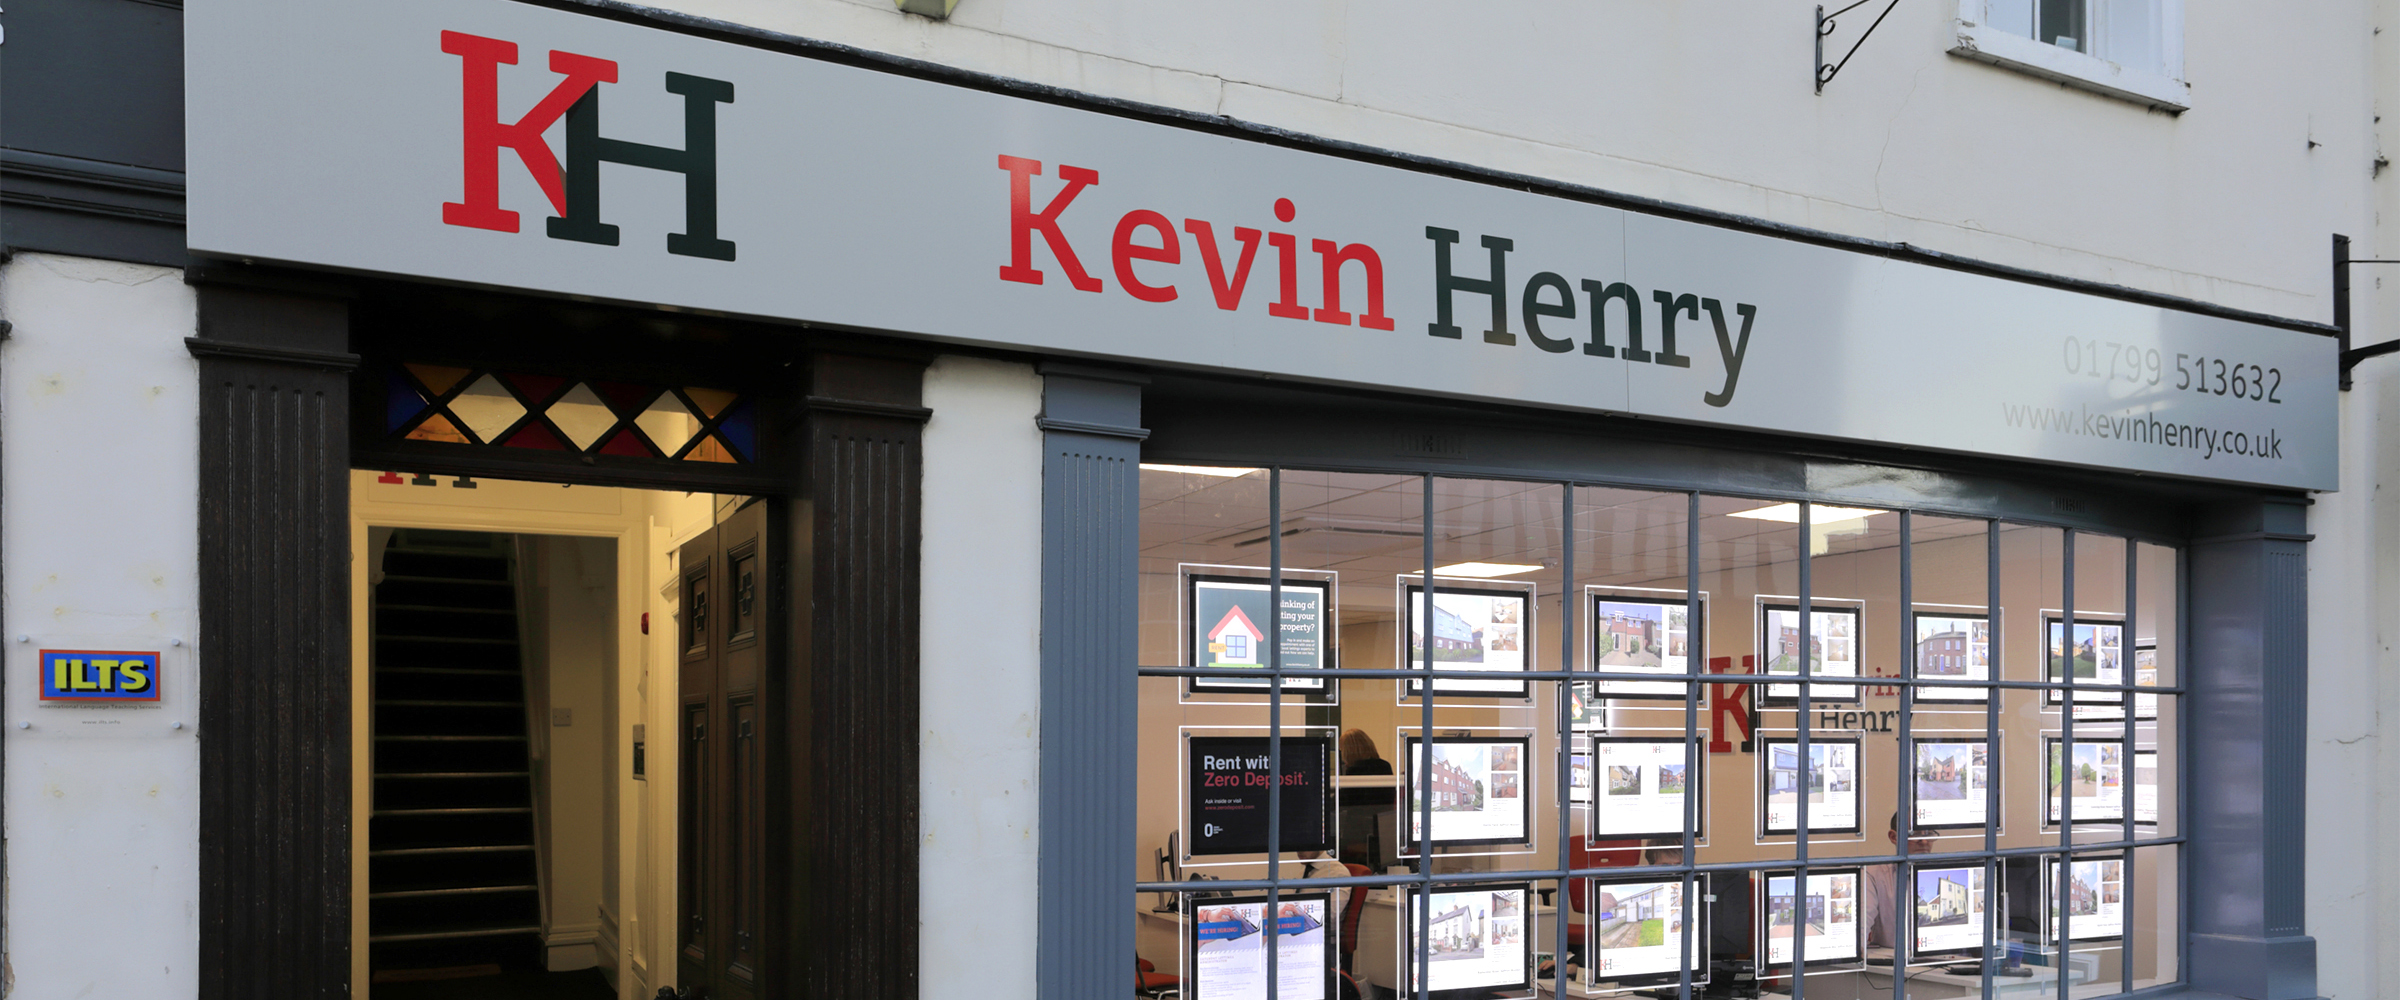 About Kevin Henry